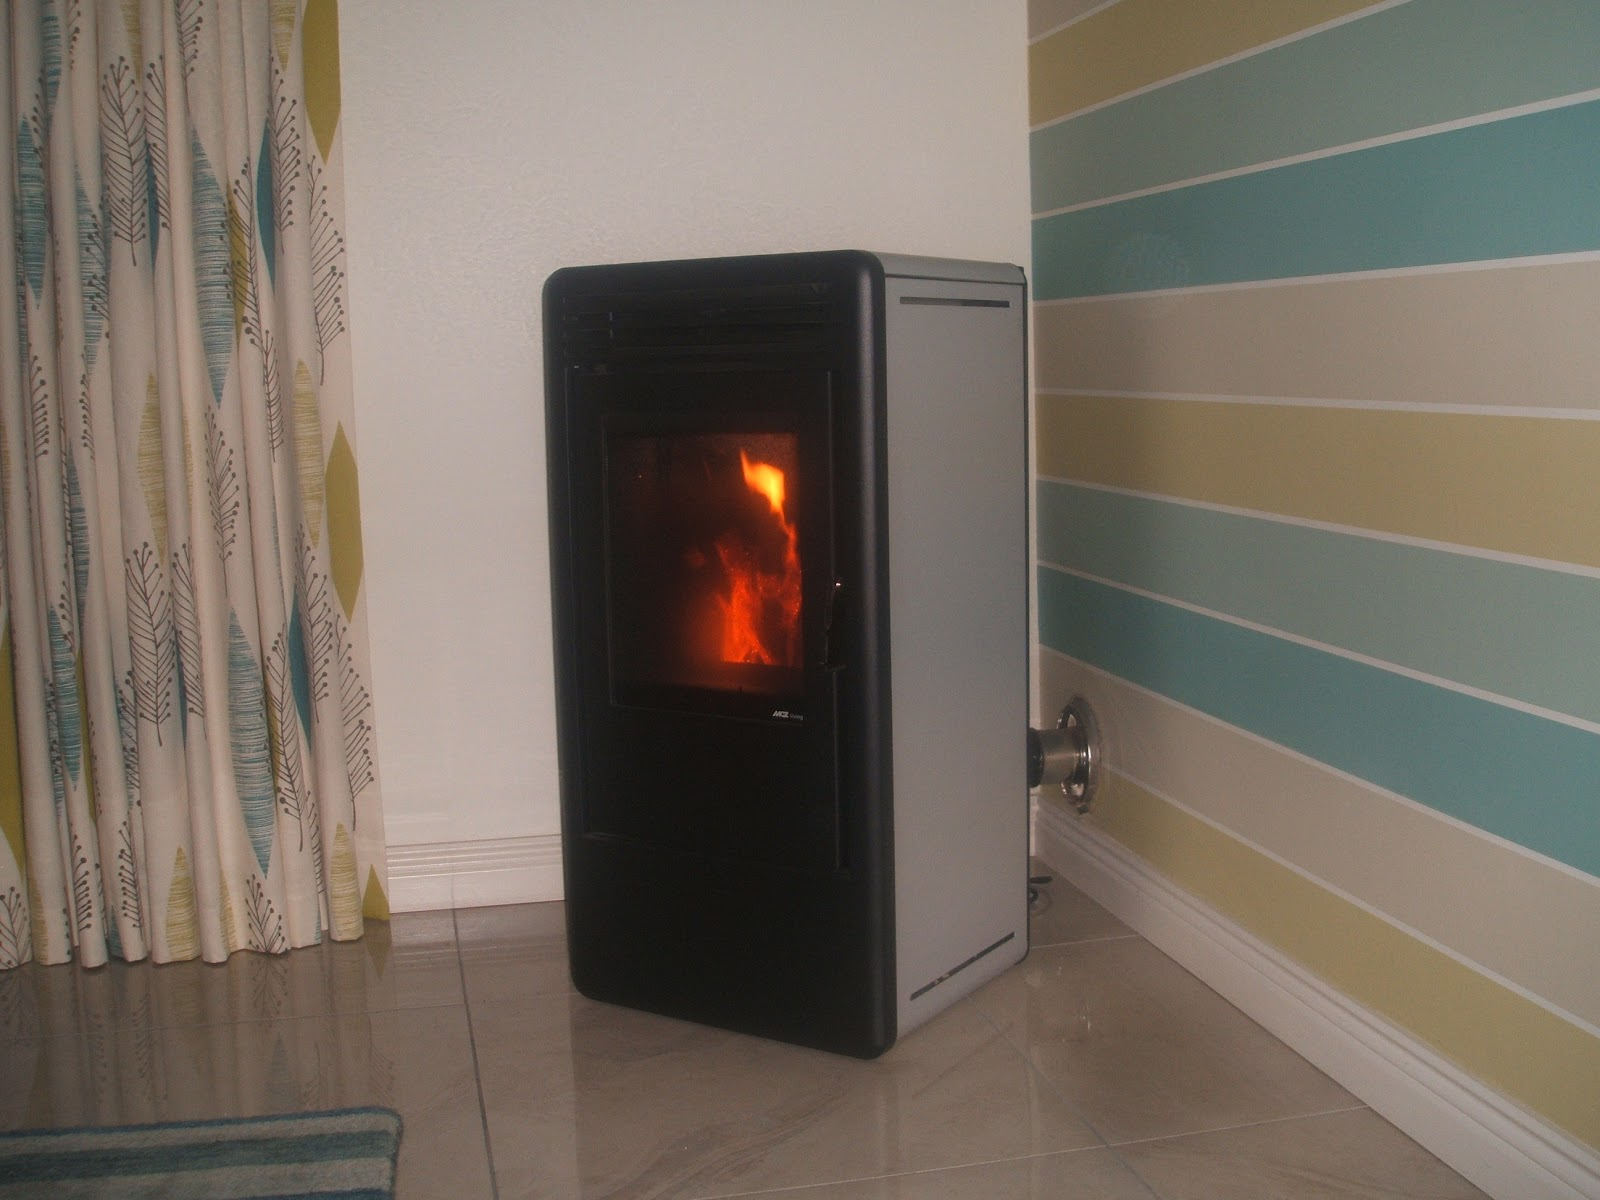 Green energy technology wood pellet stoves by mcz - Pellet stoves for small spaces set ...